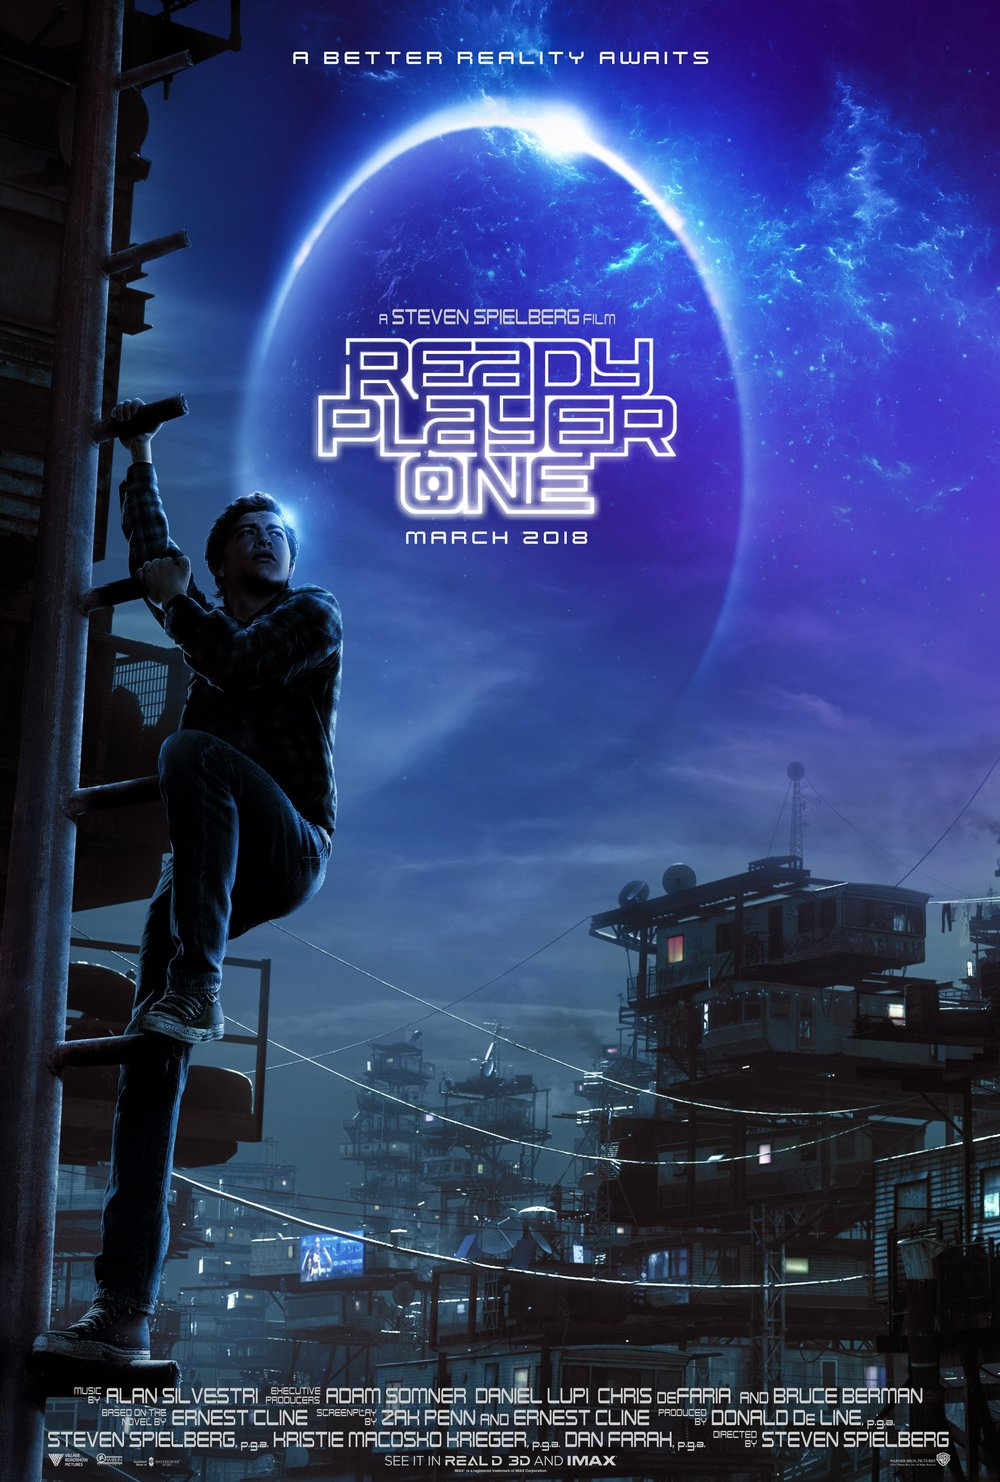 first-movie-poster-released-for-ready-player-one1